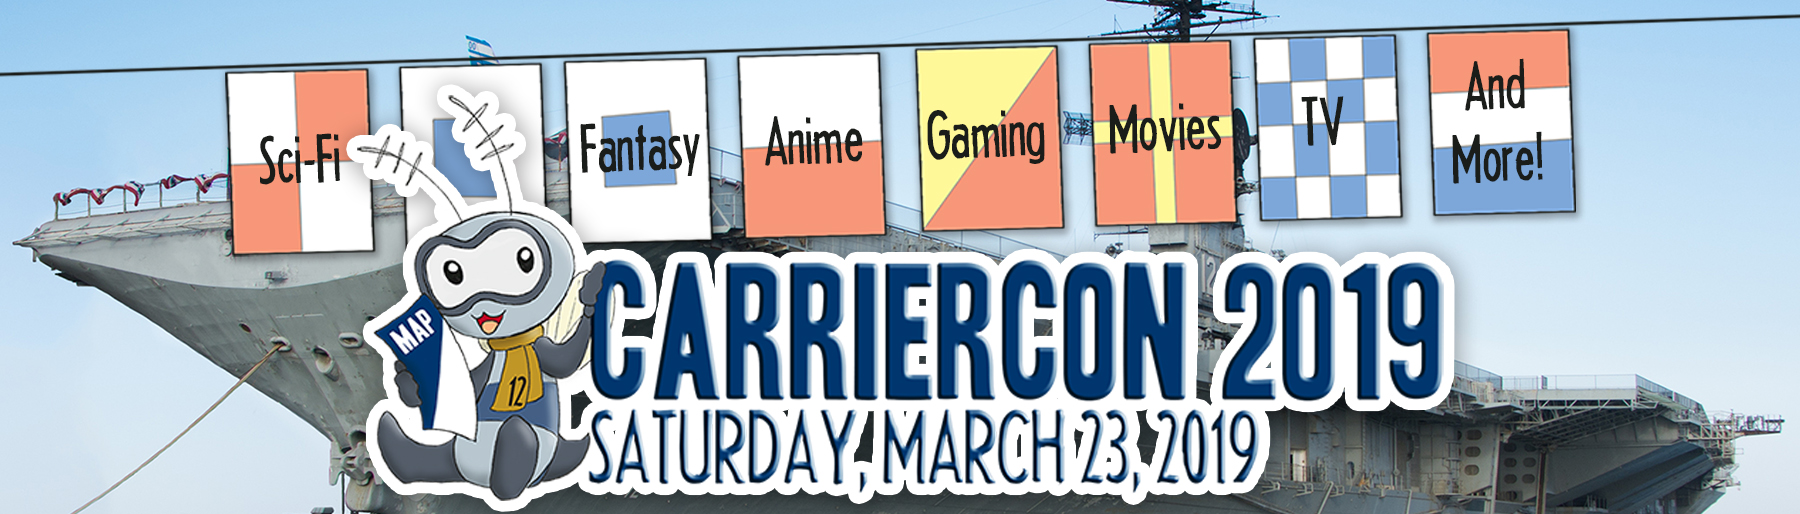 CarrierCon Image